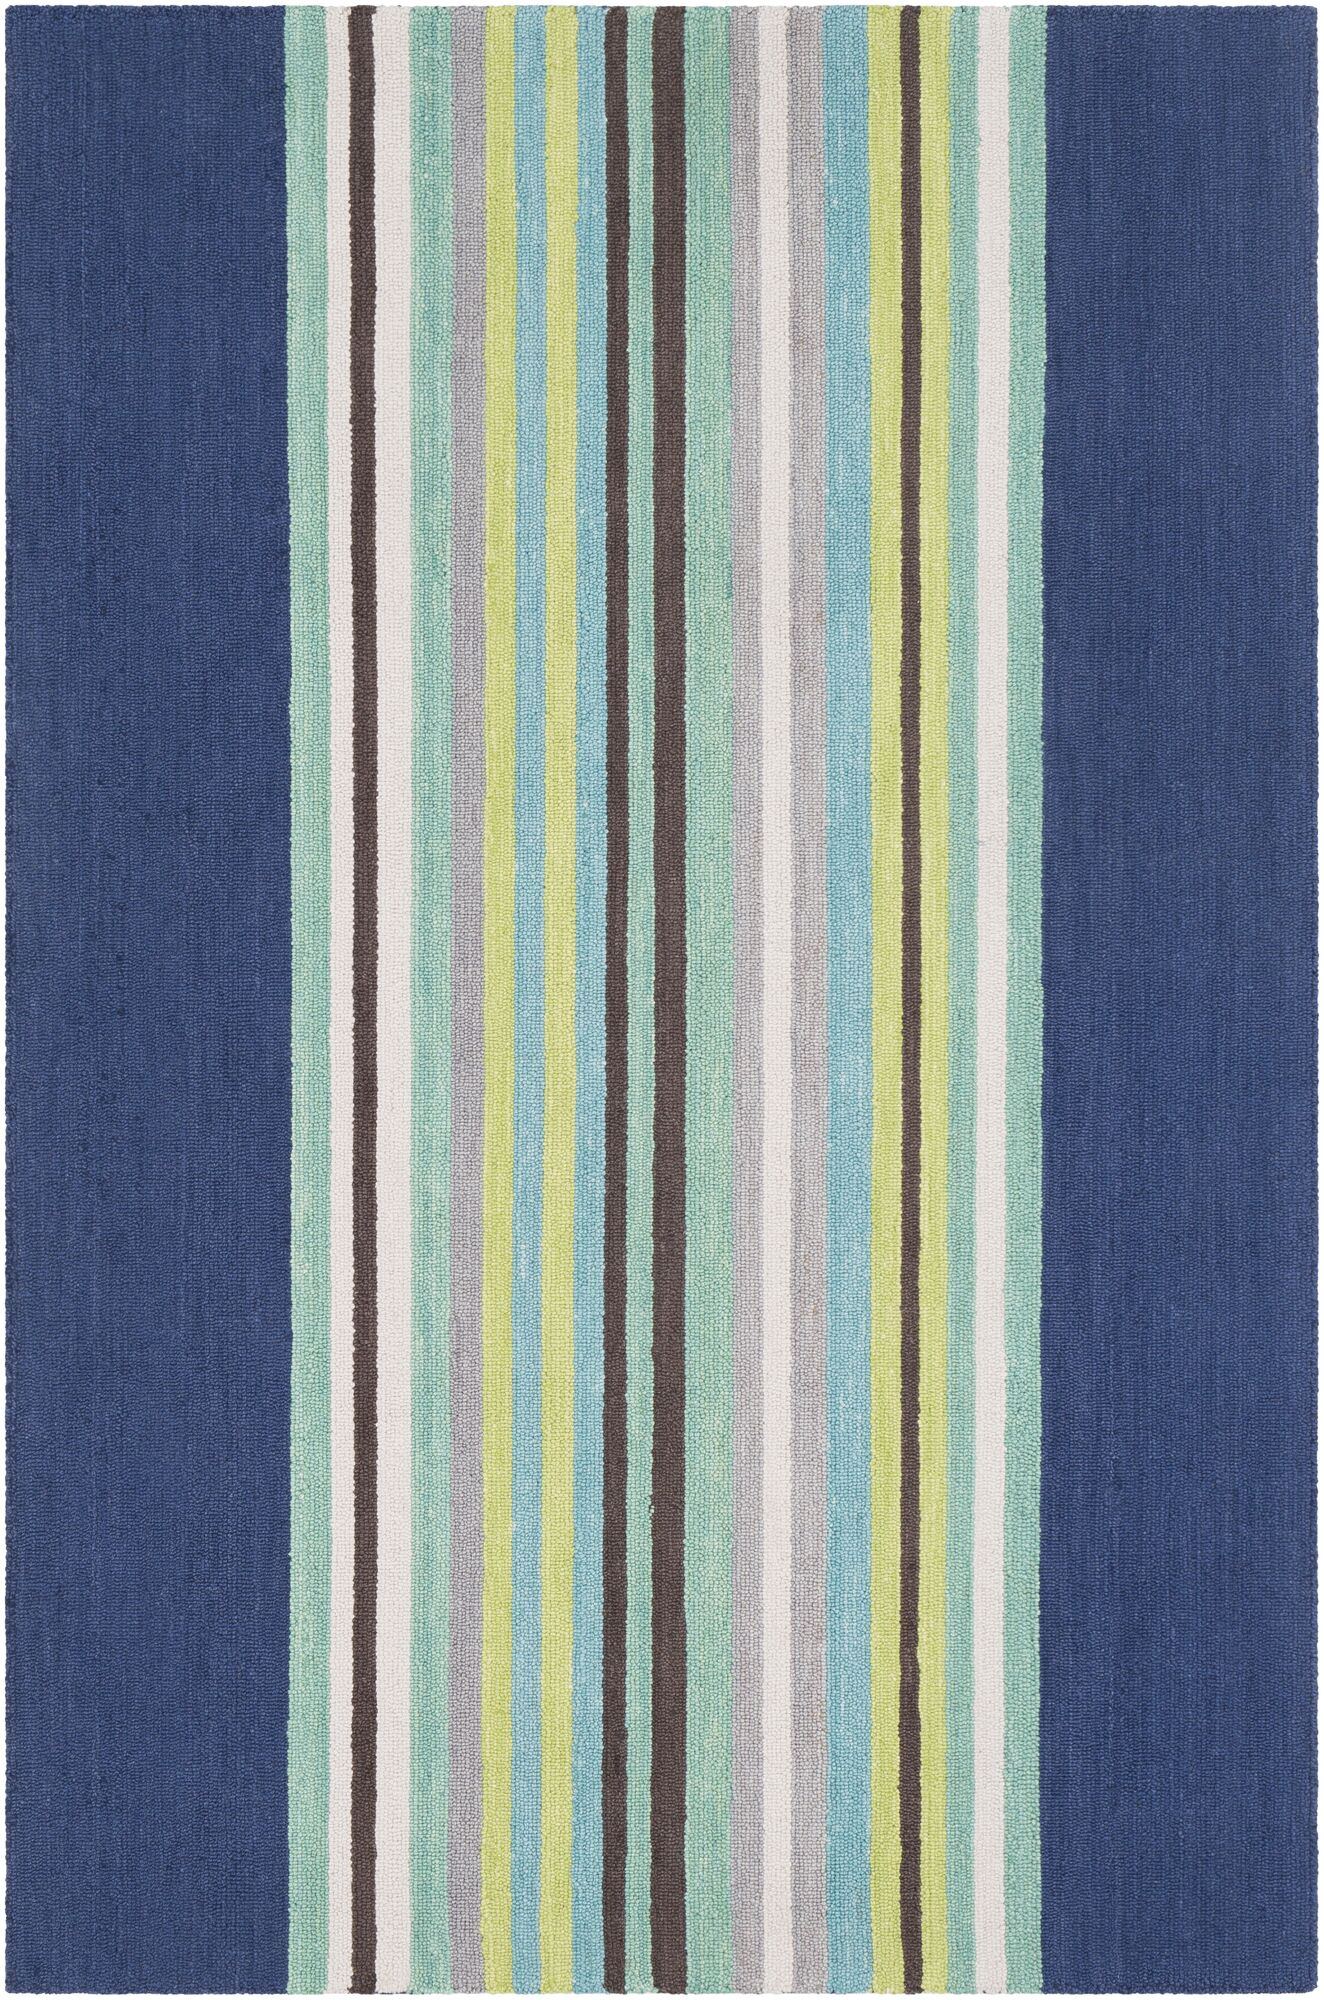 Chatman Hand Tufted Wool Blue/Mint Area Rug Rug Size: Rectangle 8' x 10'